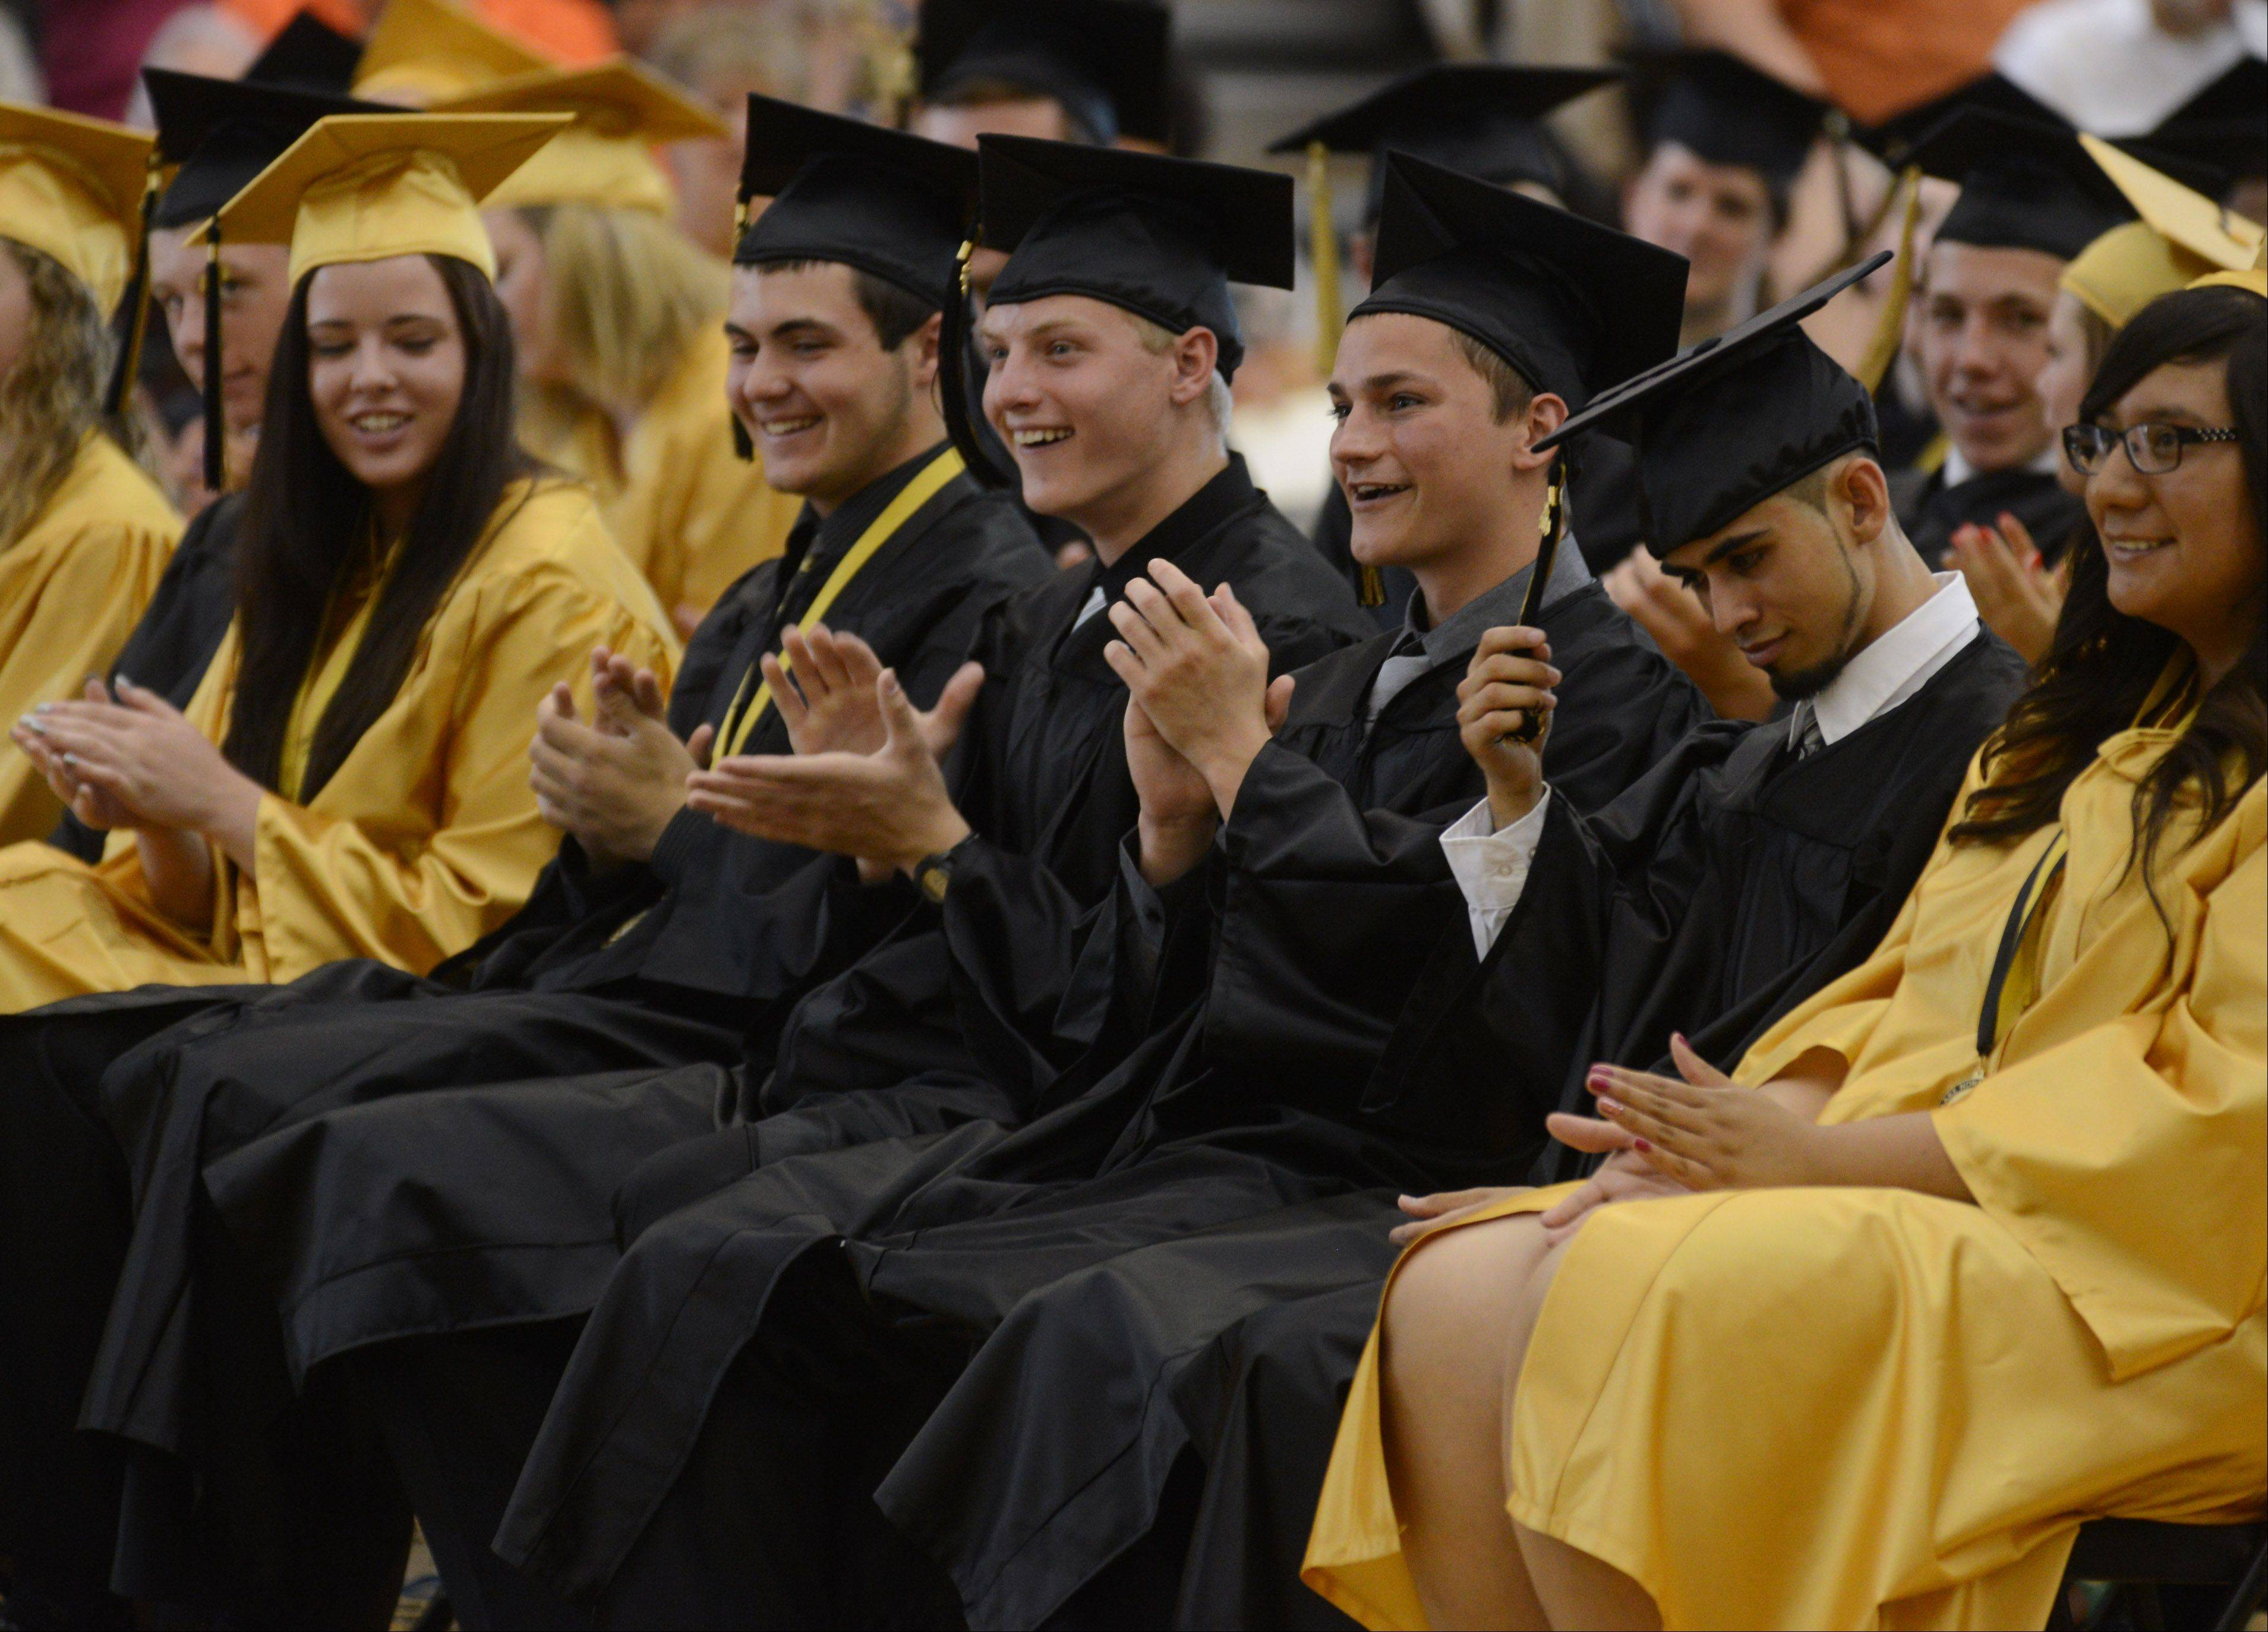 Grayslake North High School students enjoy the speeches during the graduation ceremony at the school Sunday.